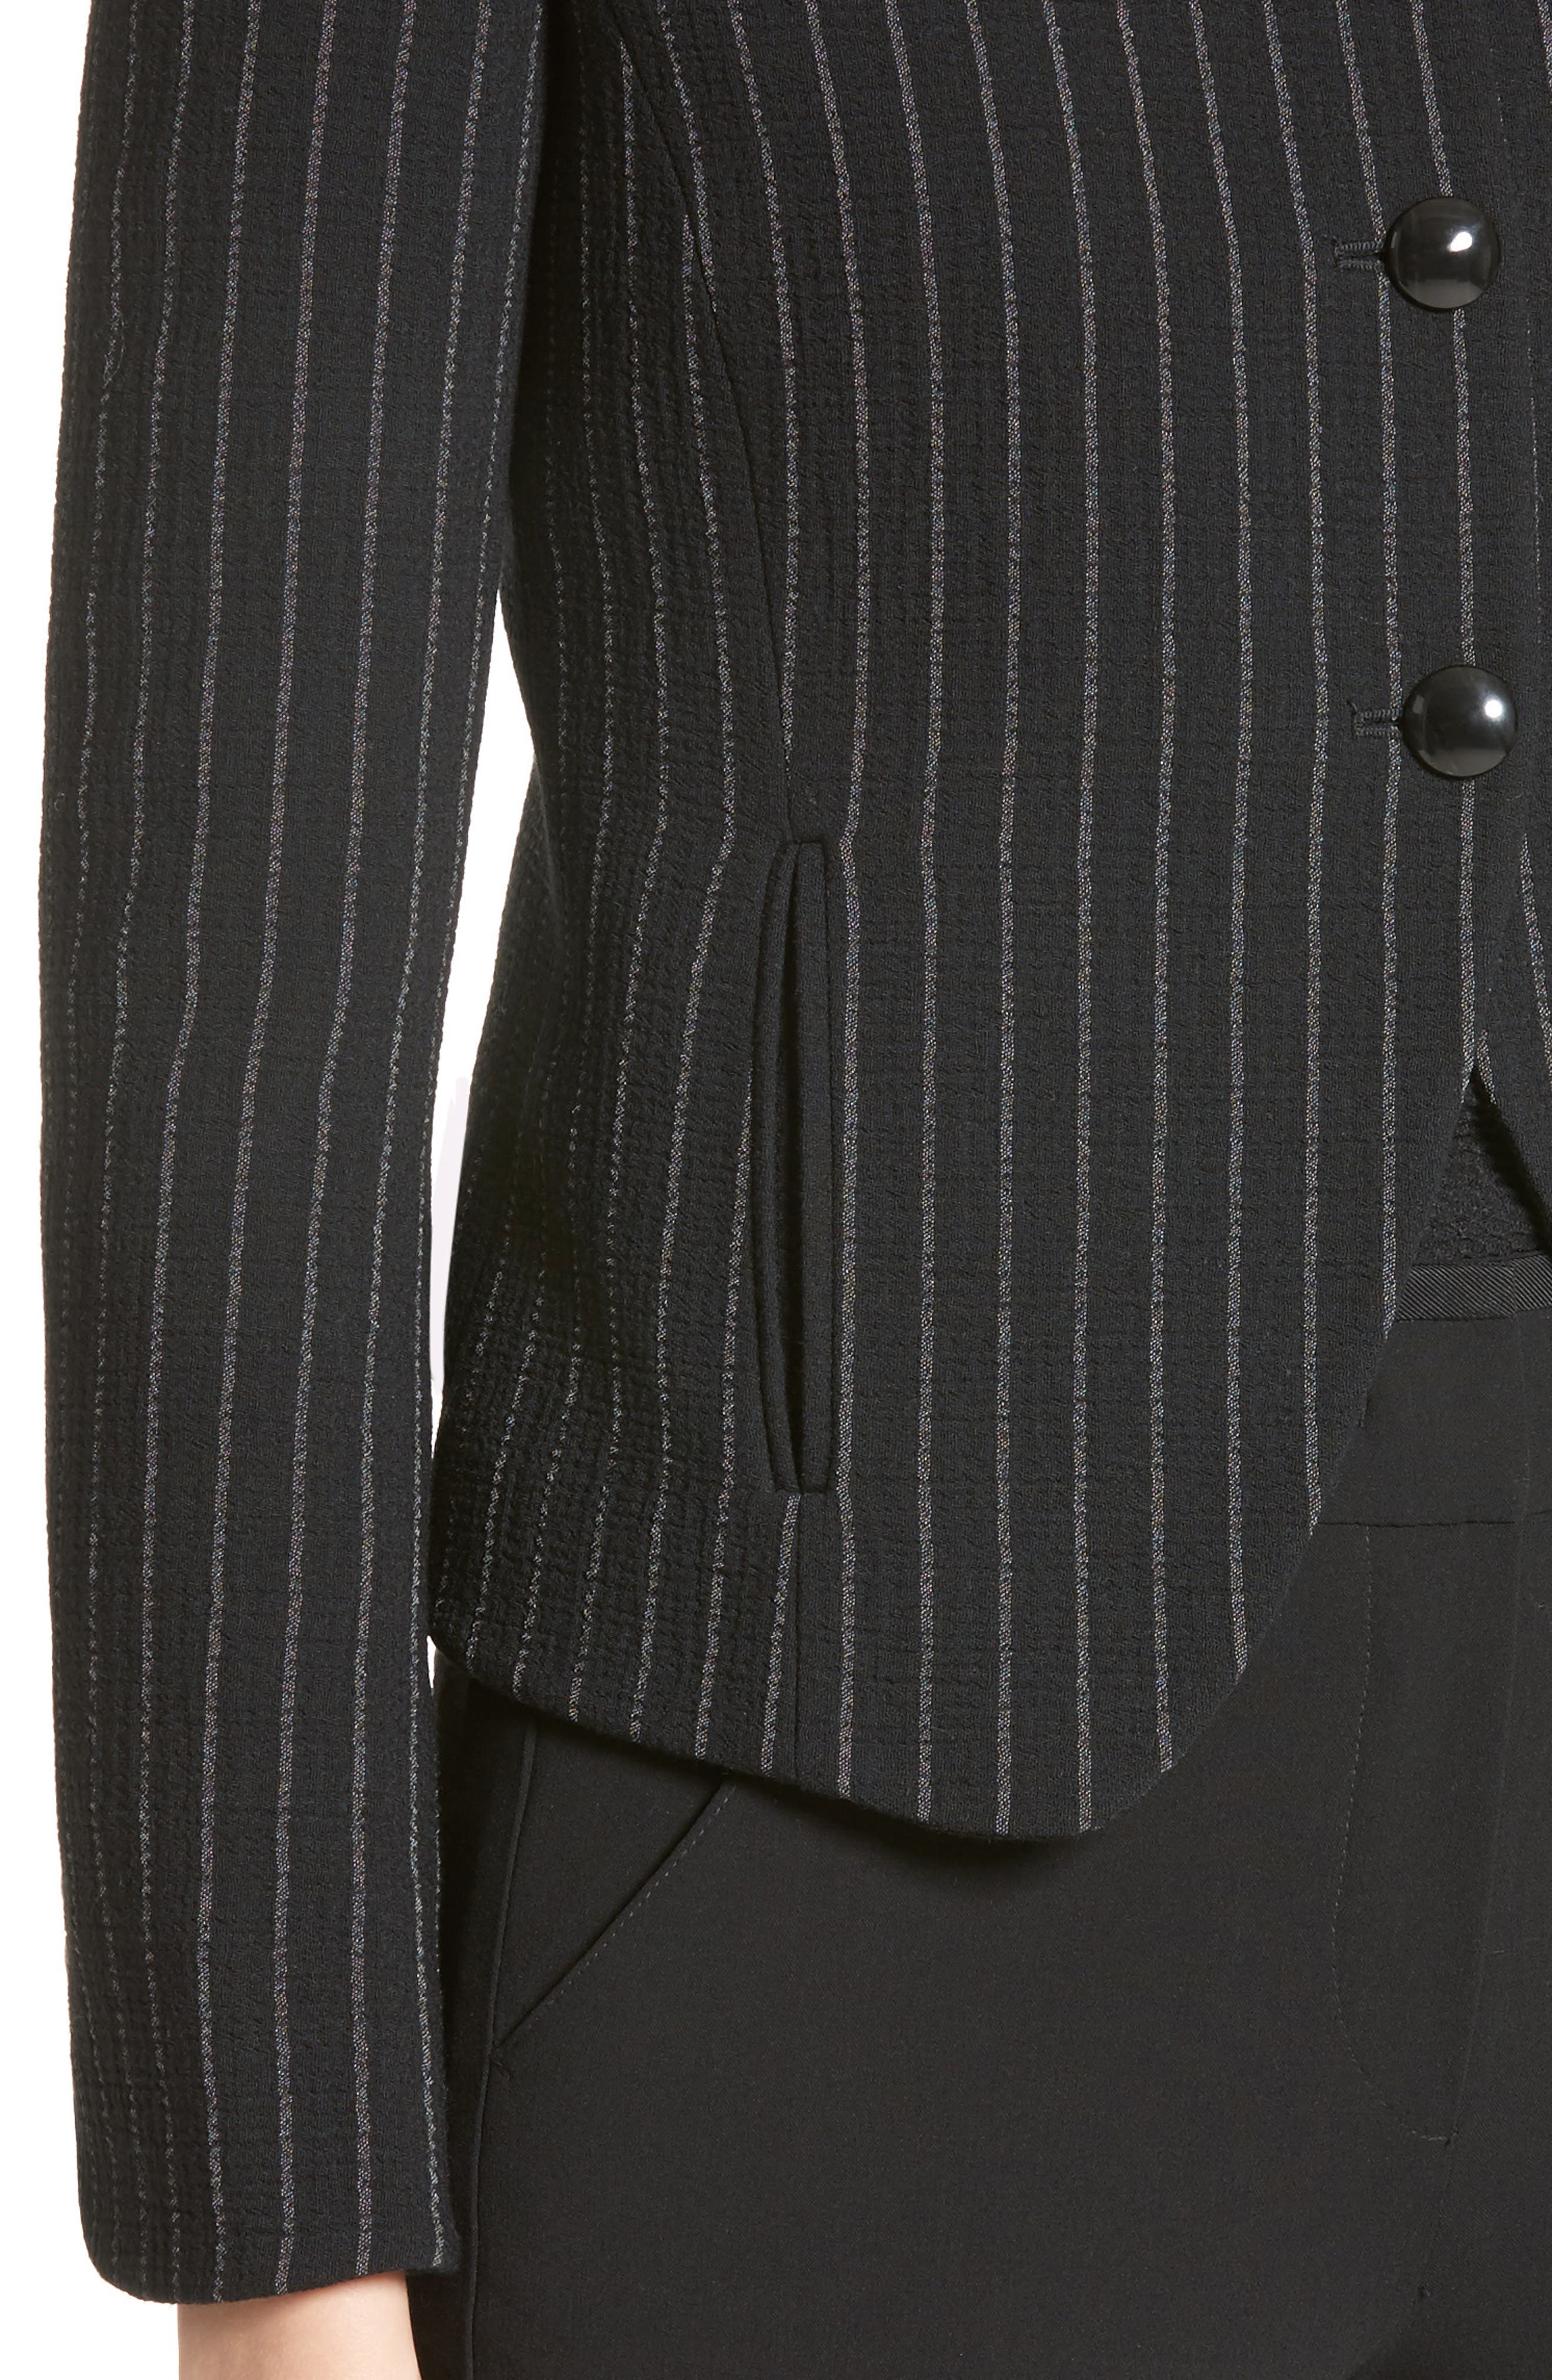 Stretch Wool Pinstripe Jacket,                             Alternate thumbnail 6, color,                             Black Grey Multi